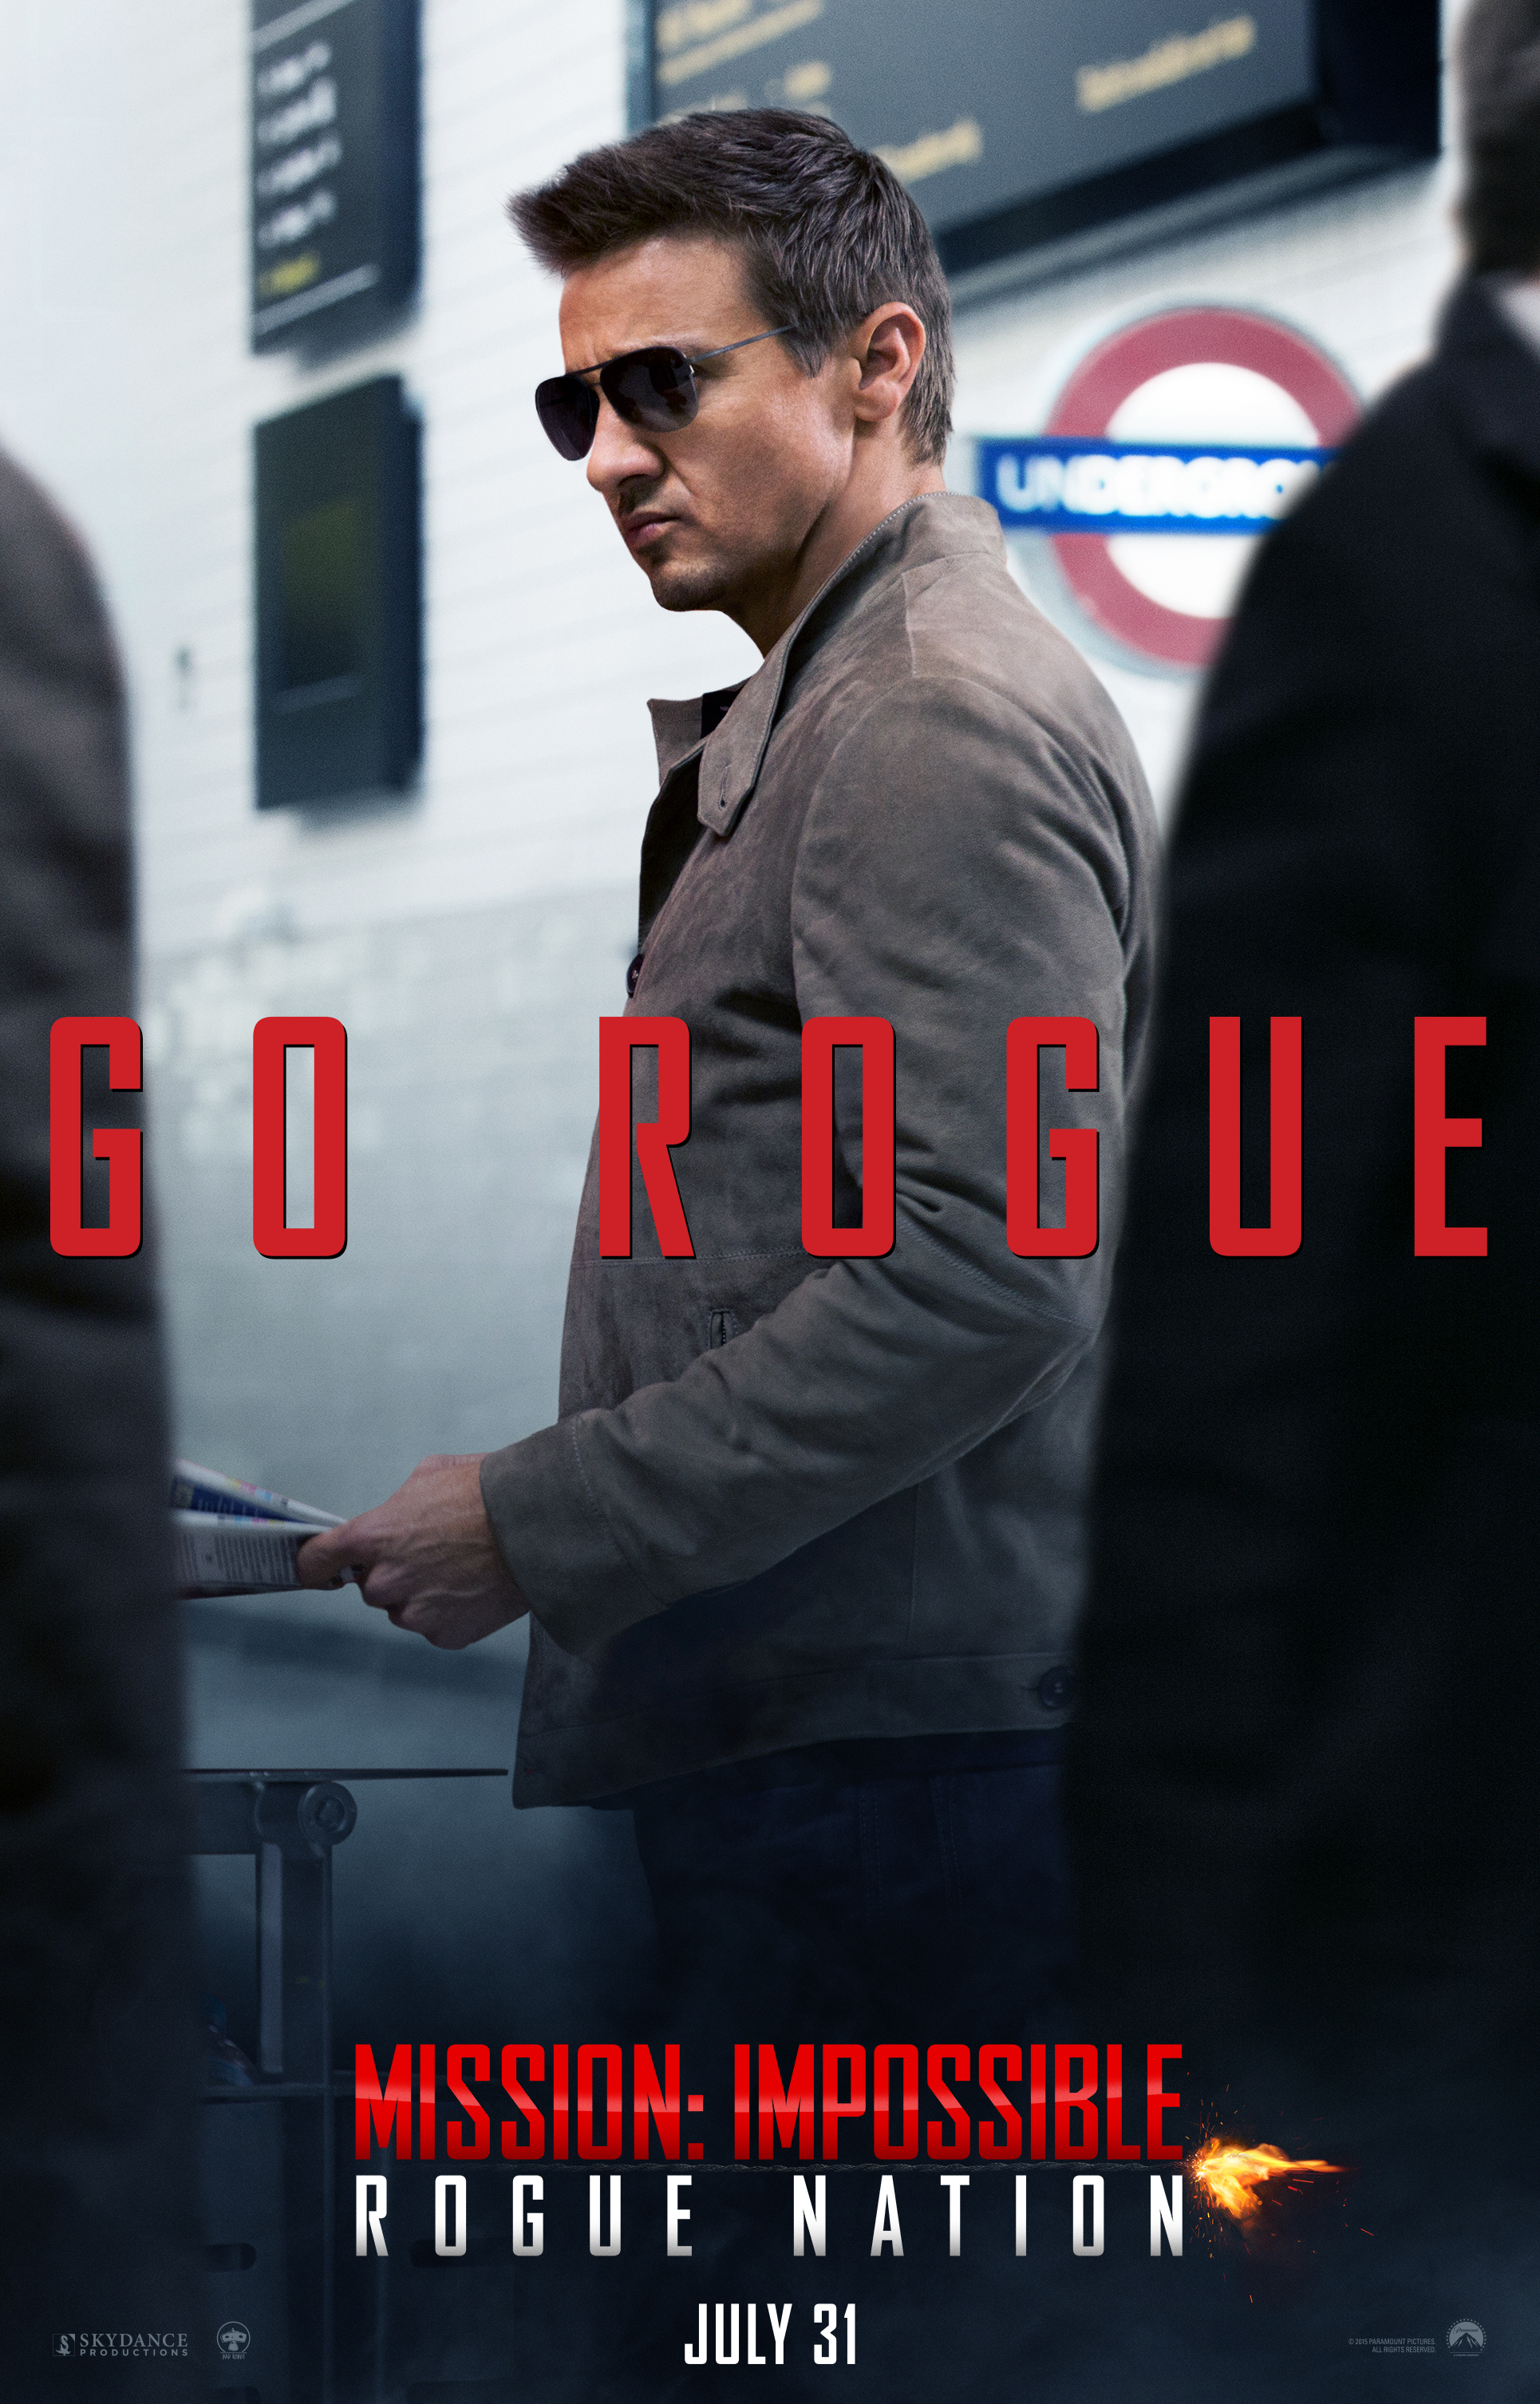 Mission Impossible Rogue Nation poster 4.jpg